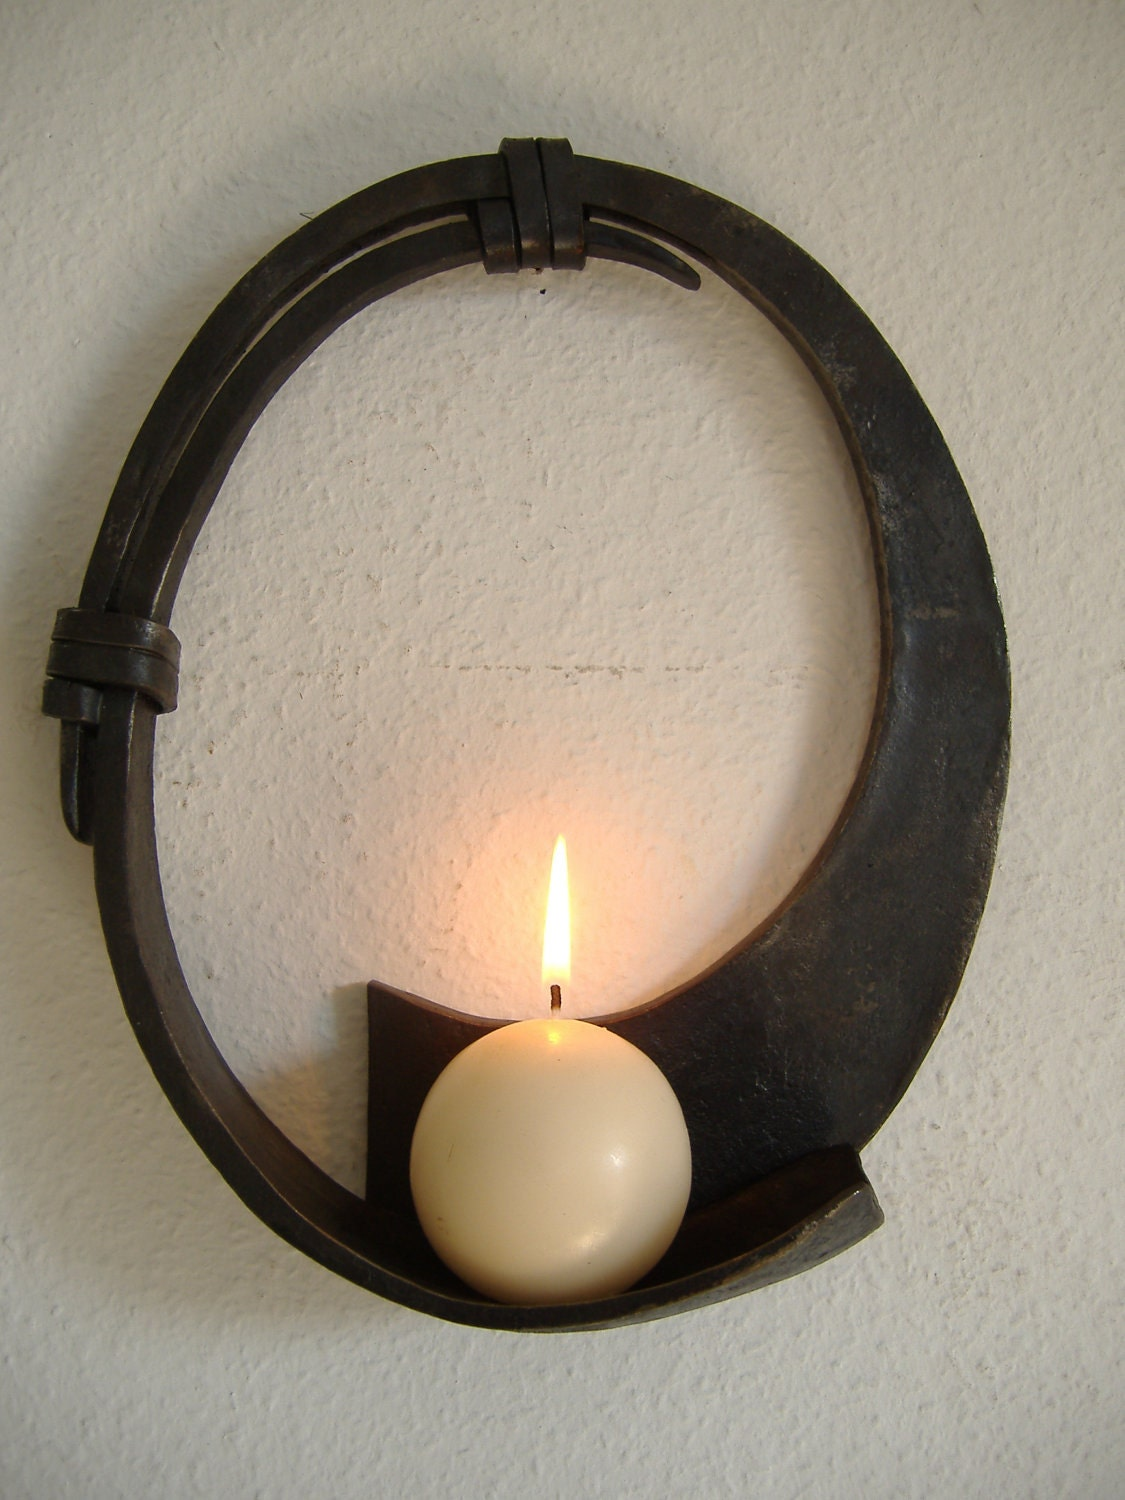 Circular Wall Sconce Candle Holder : Round Candle Wall Sconce